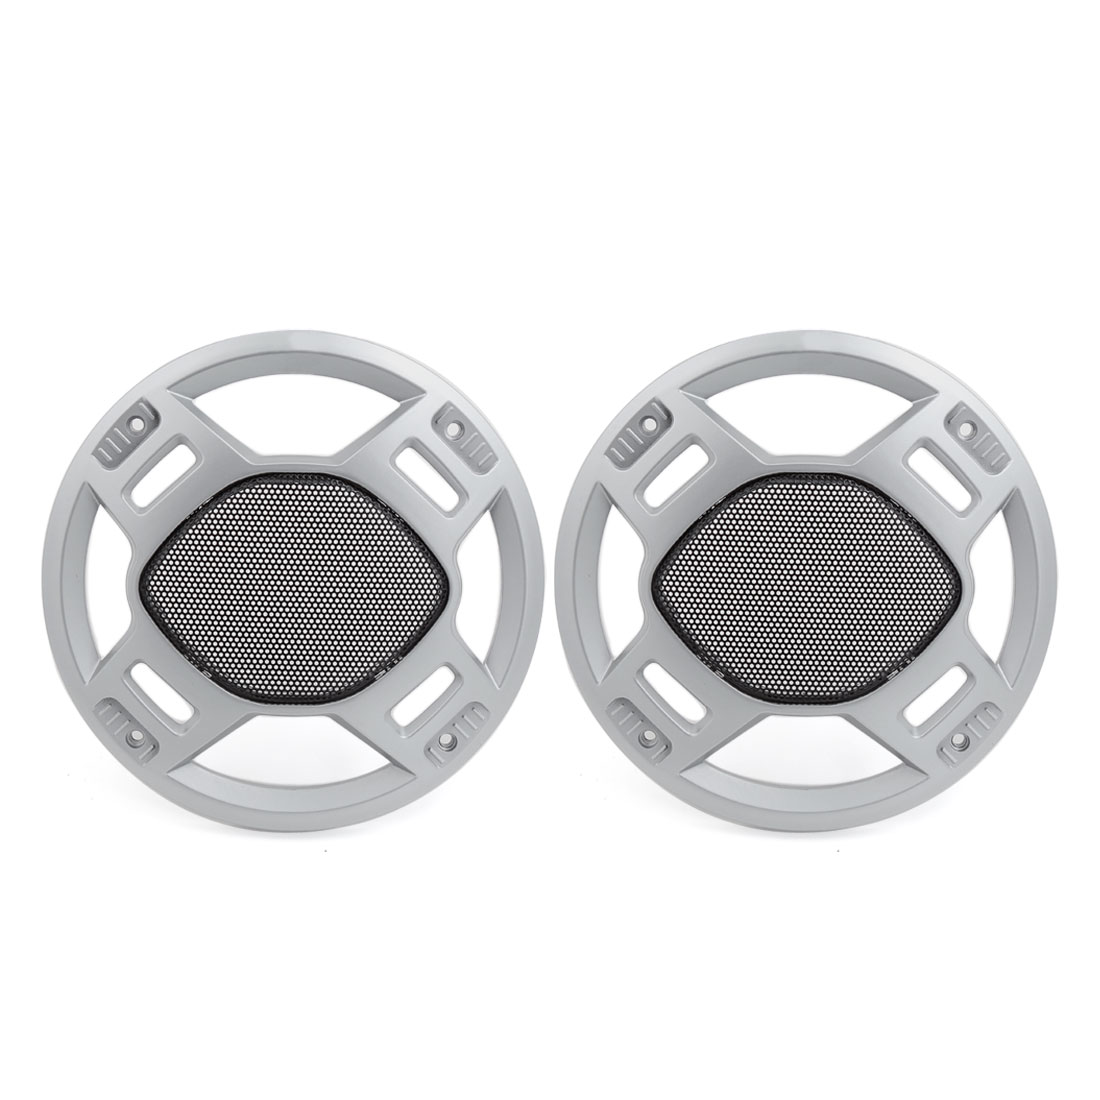 "Pair 8.8"" Dia Horn Dustproof Cover Hood Speaker Subwoofer Grill Protector for Car"